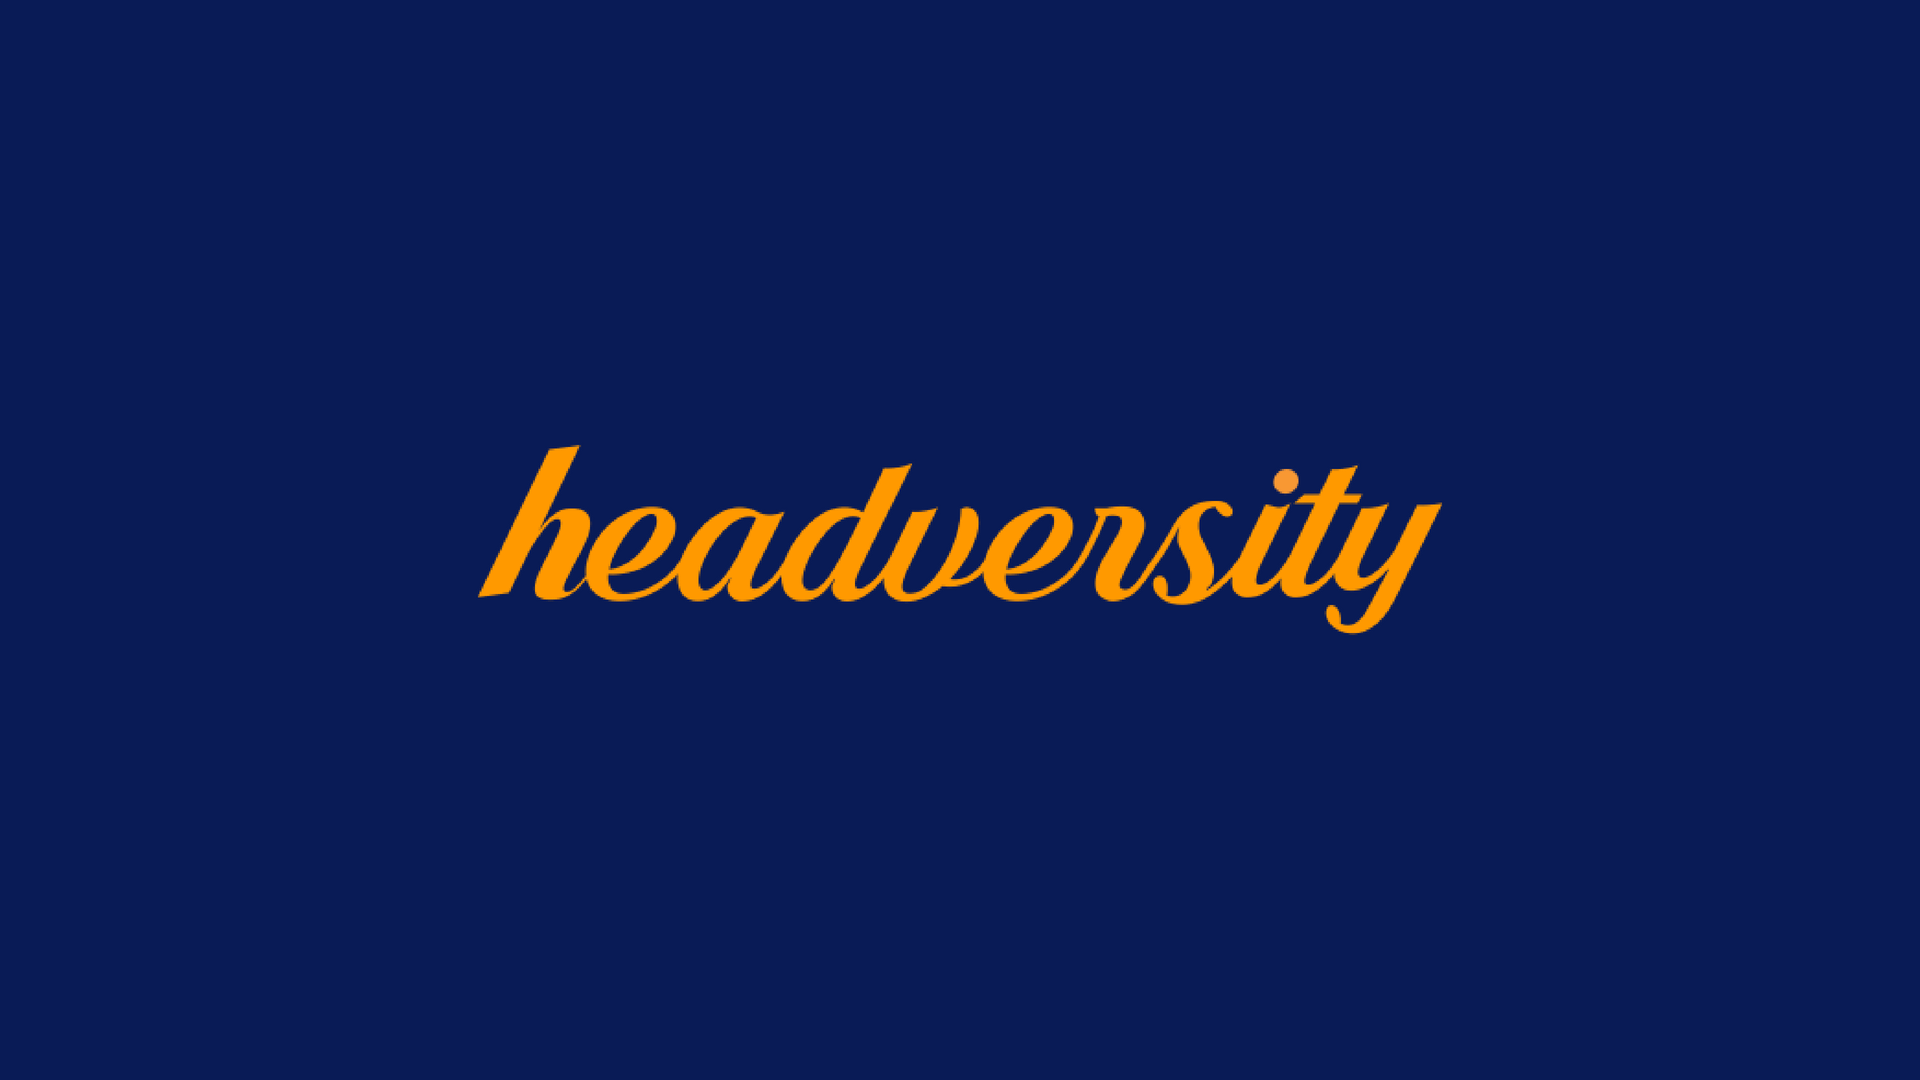 New Partnership with headversity to Support Mental Wellbeing in the Workplace